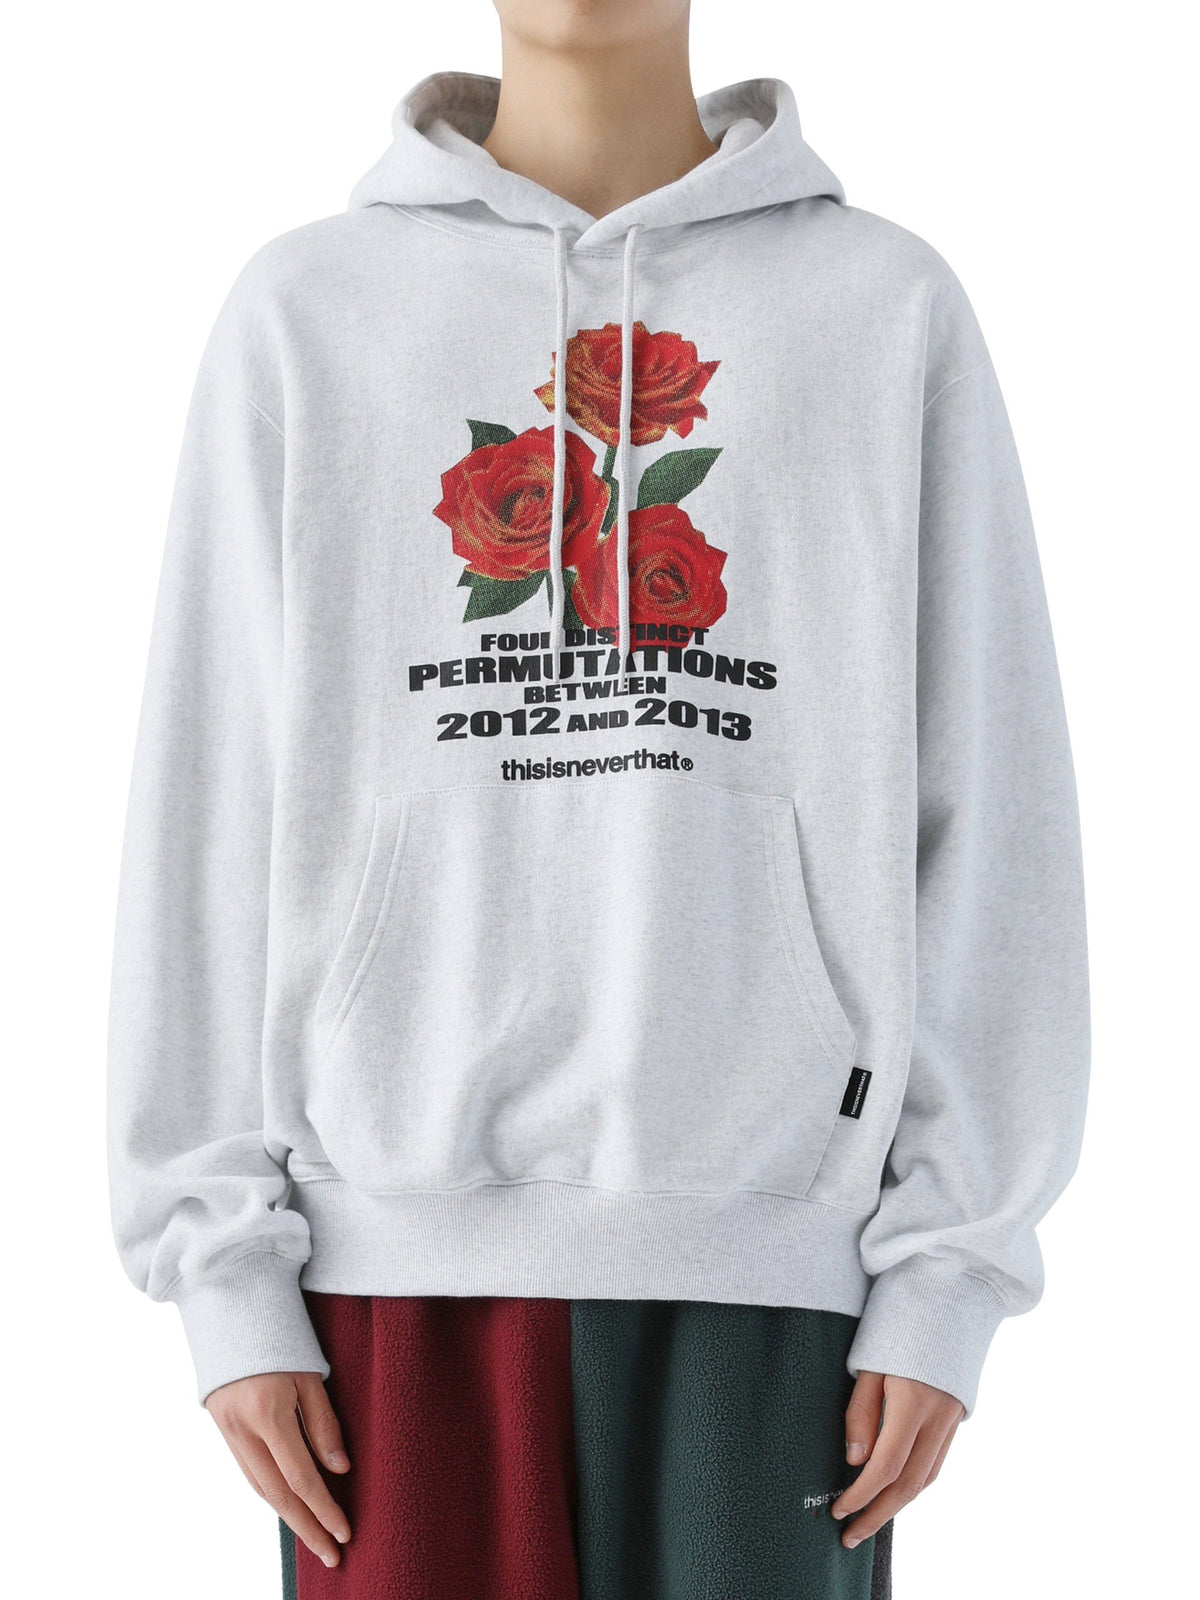 Rose Hooded Sweatshirt - thisisneverthat